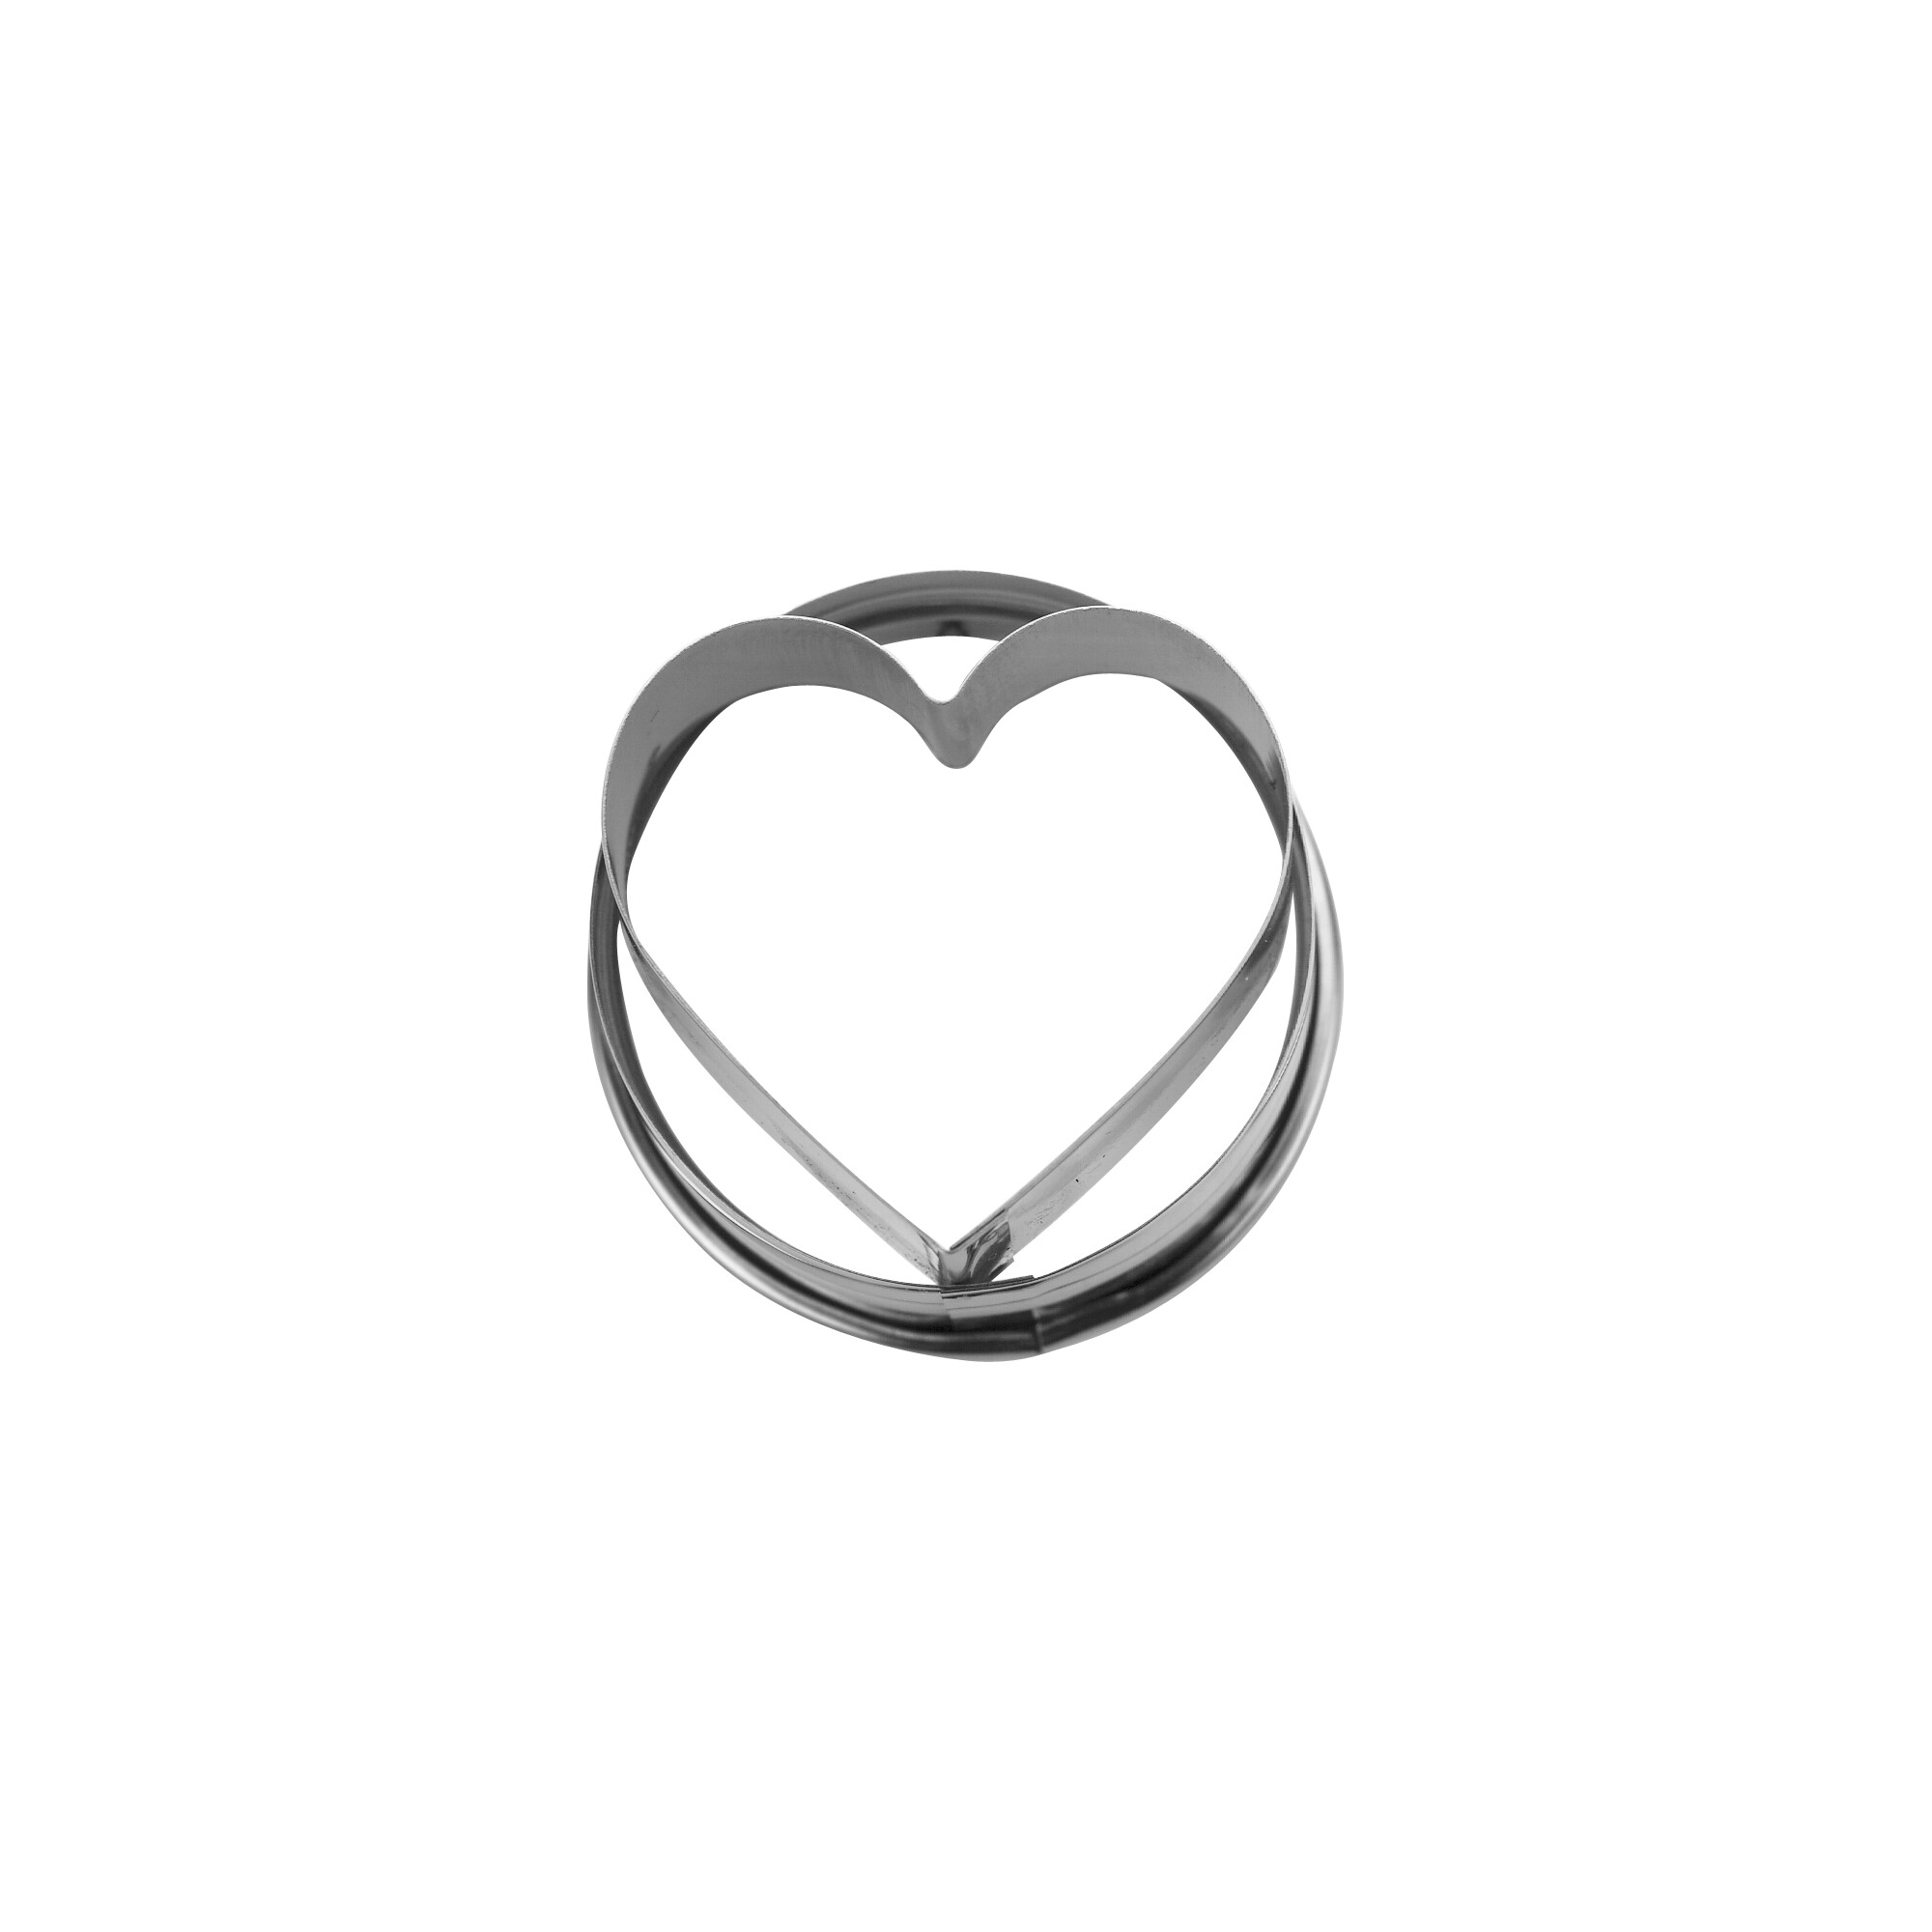 Linzer cookie cutter - Heart - Outer ring